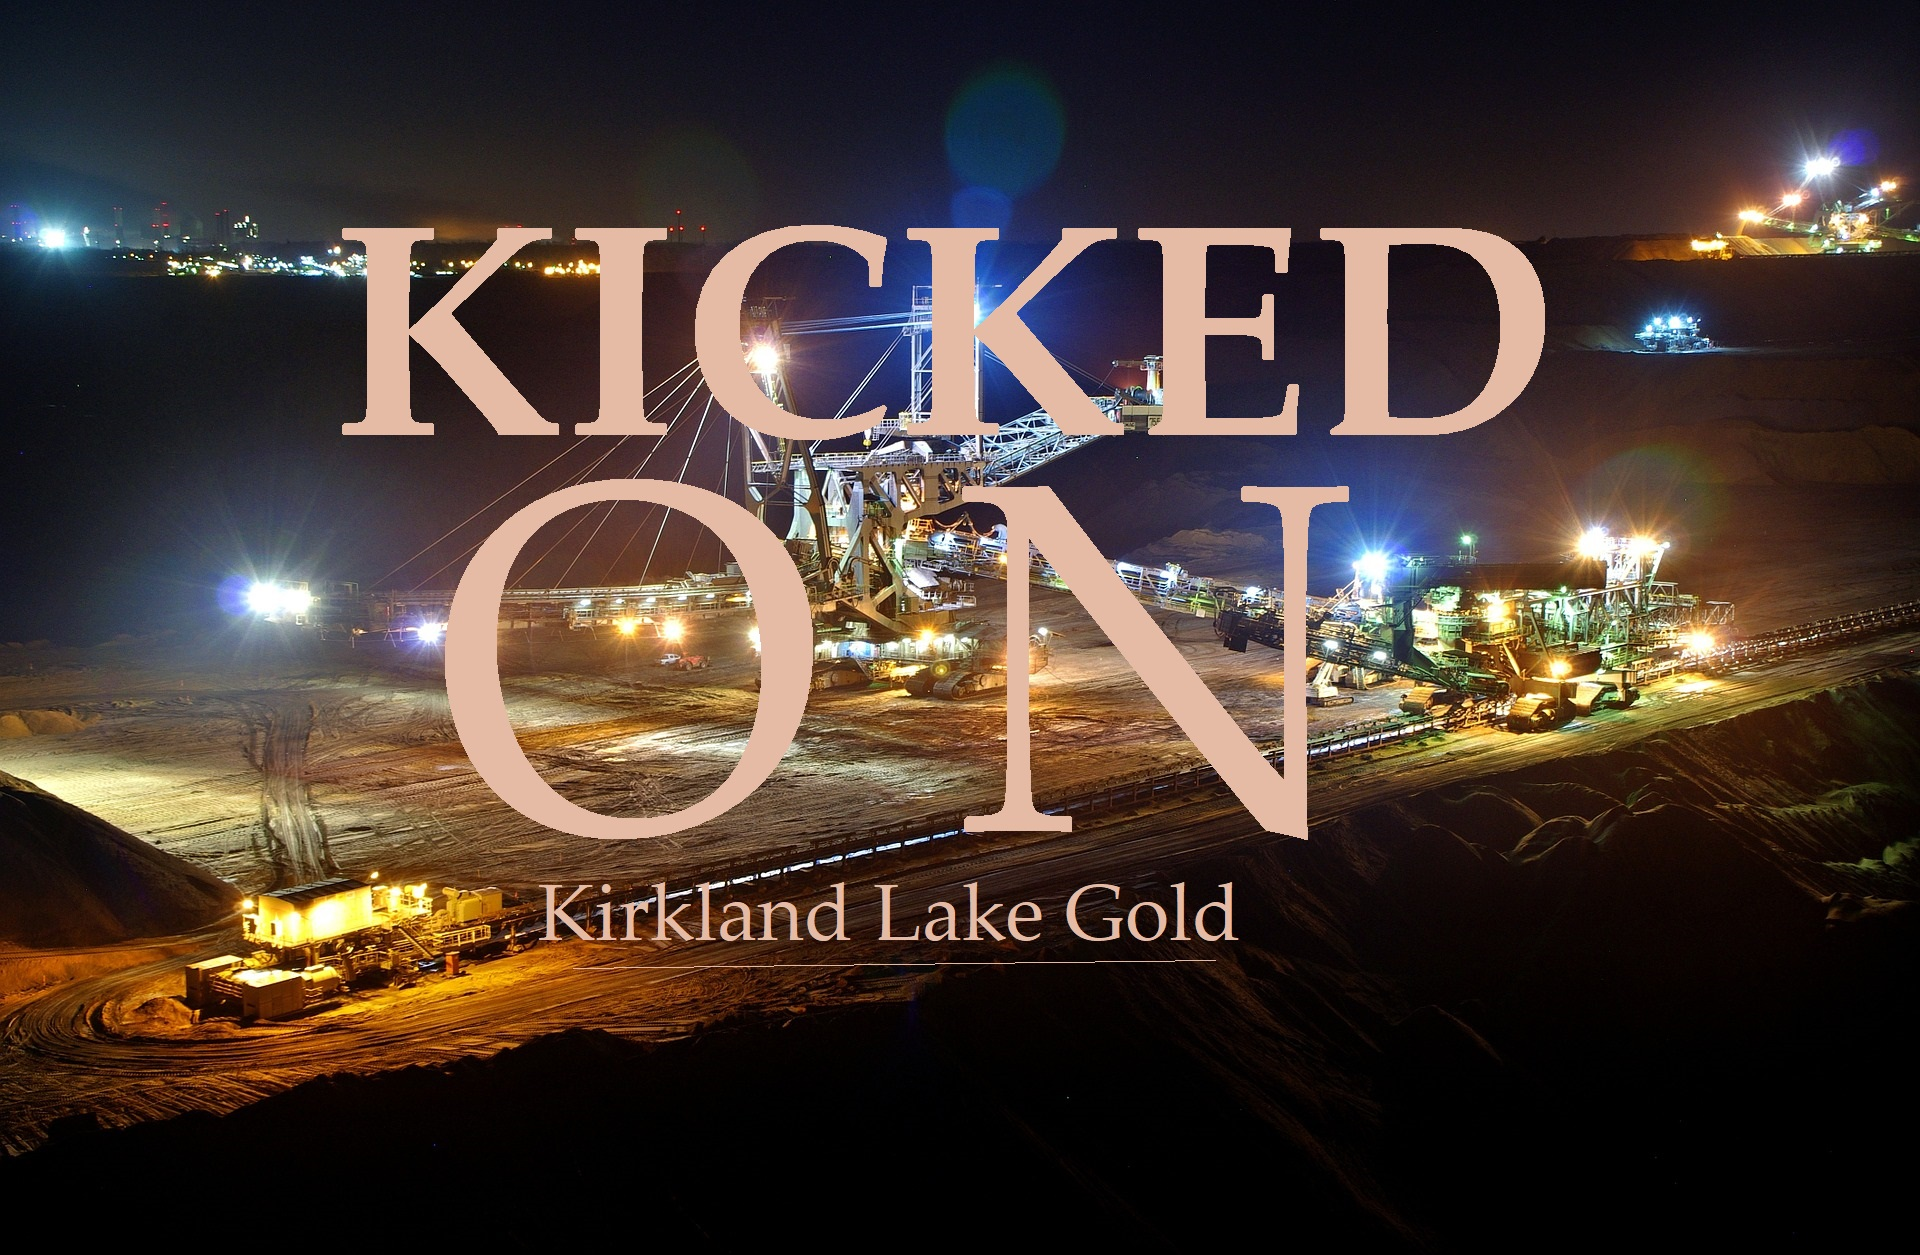 Kirkland Lake Gold, Kicked On